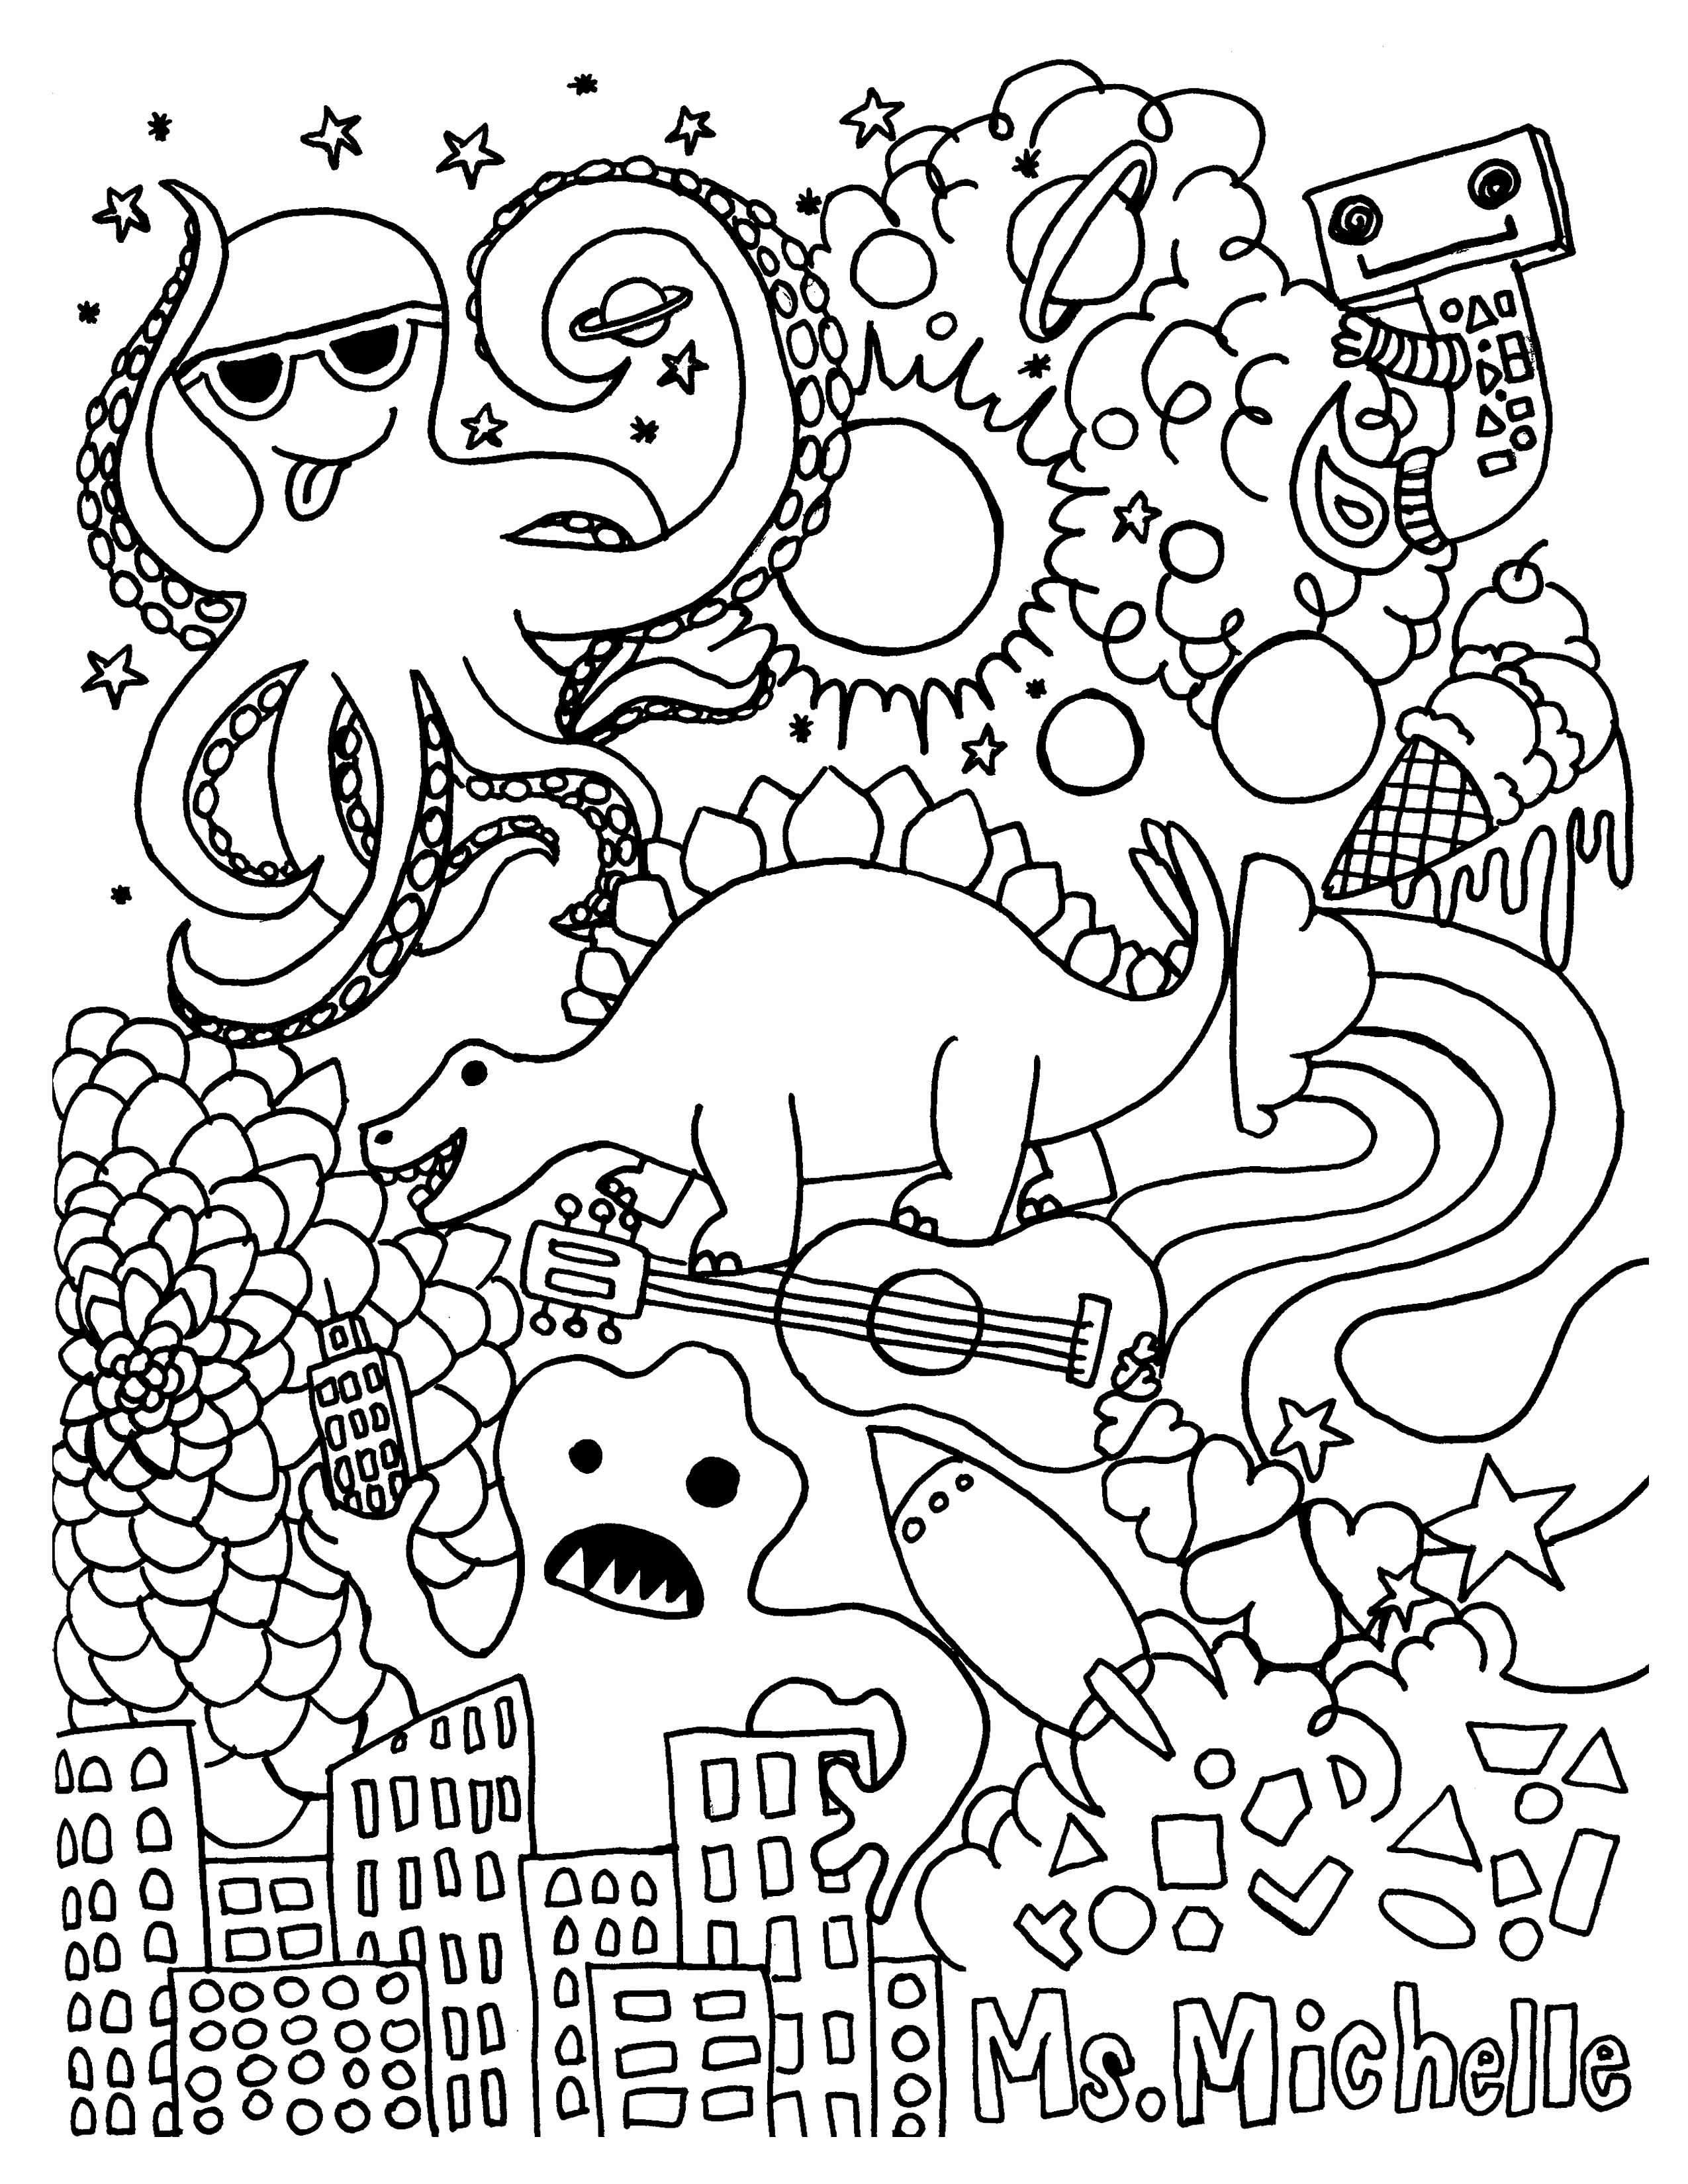 Christmas Colouring Pages Bible With Free Coloring Of The Three Wise Men